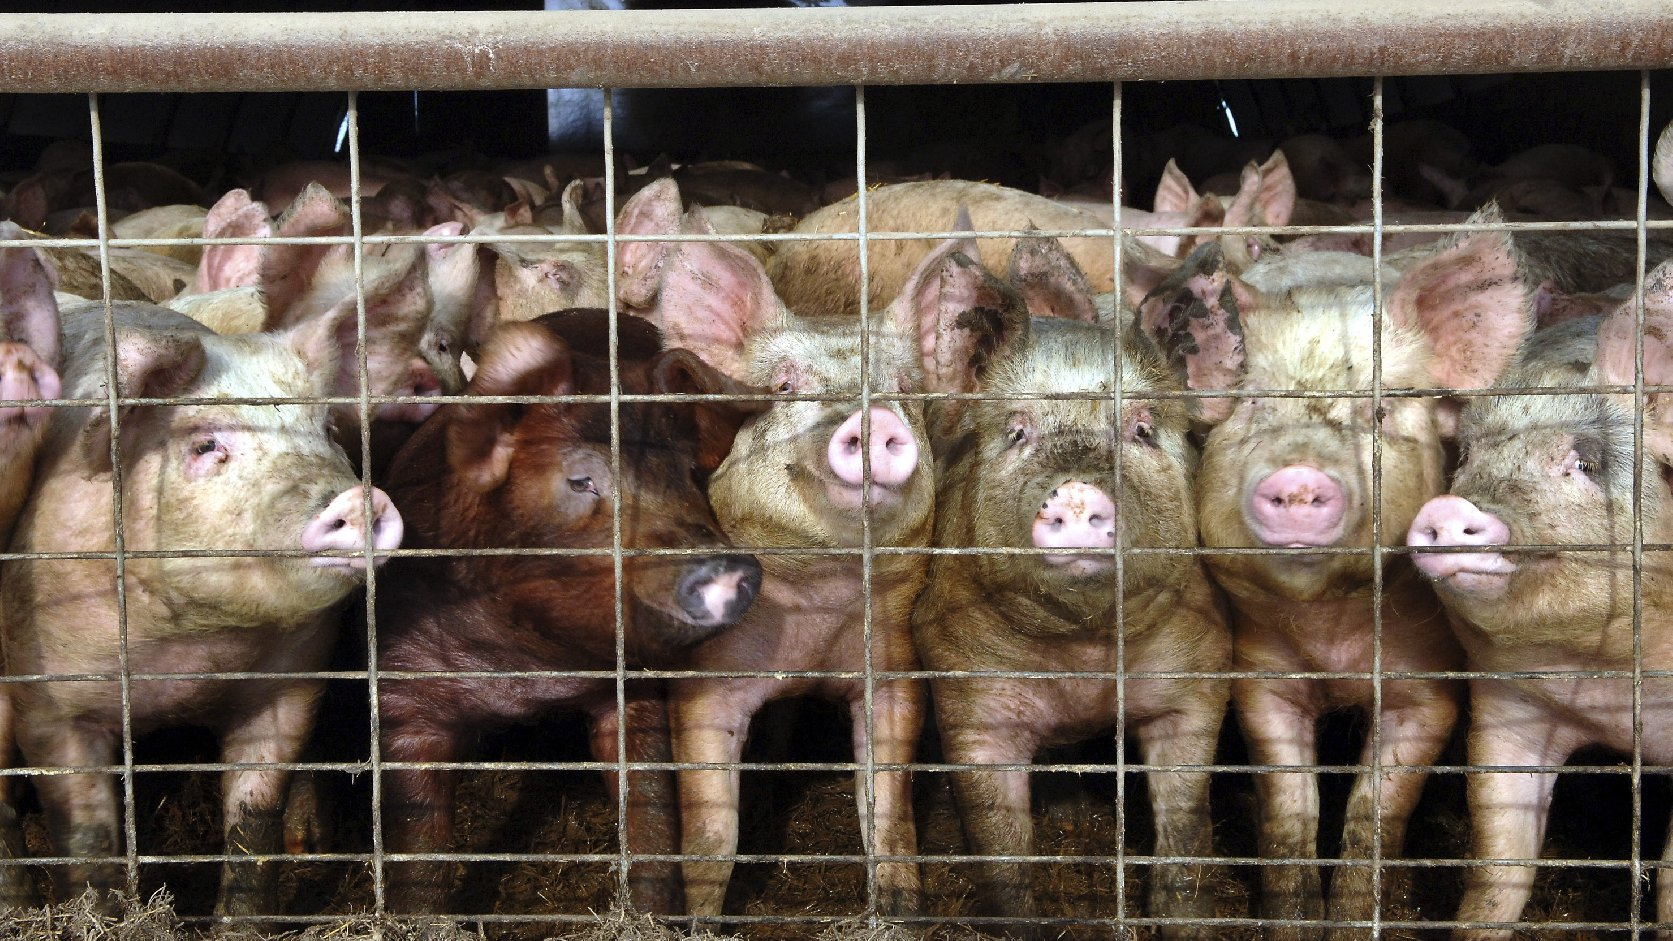 Deadly Virus Sparks French Ban On Live Pigs From U.S.